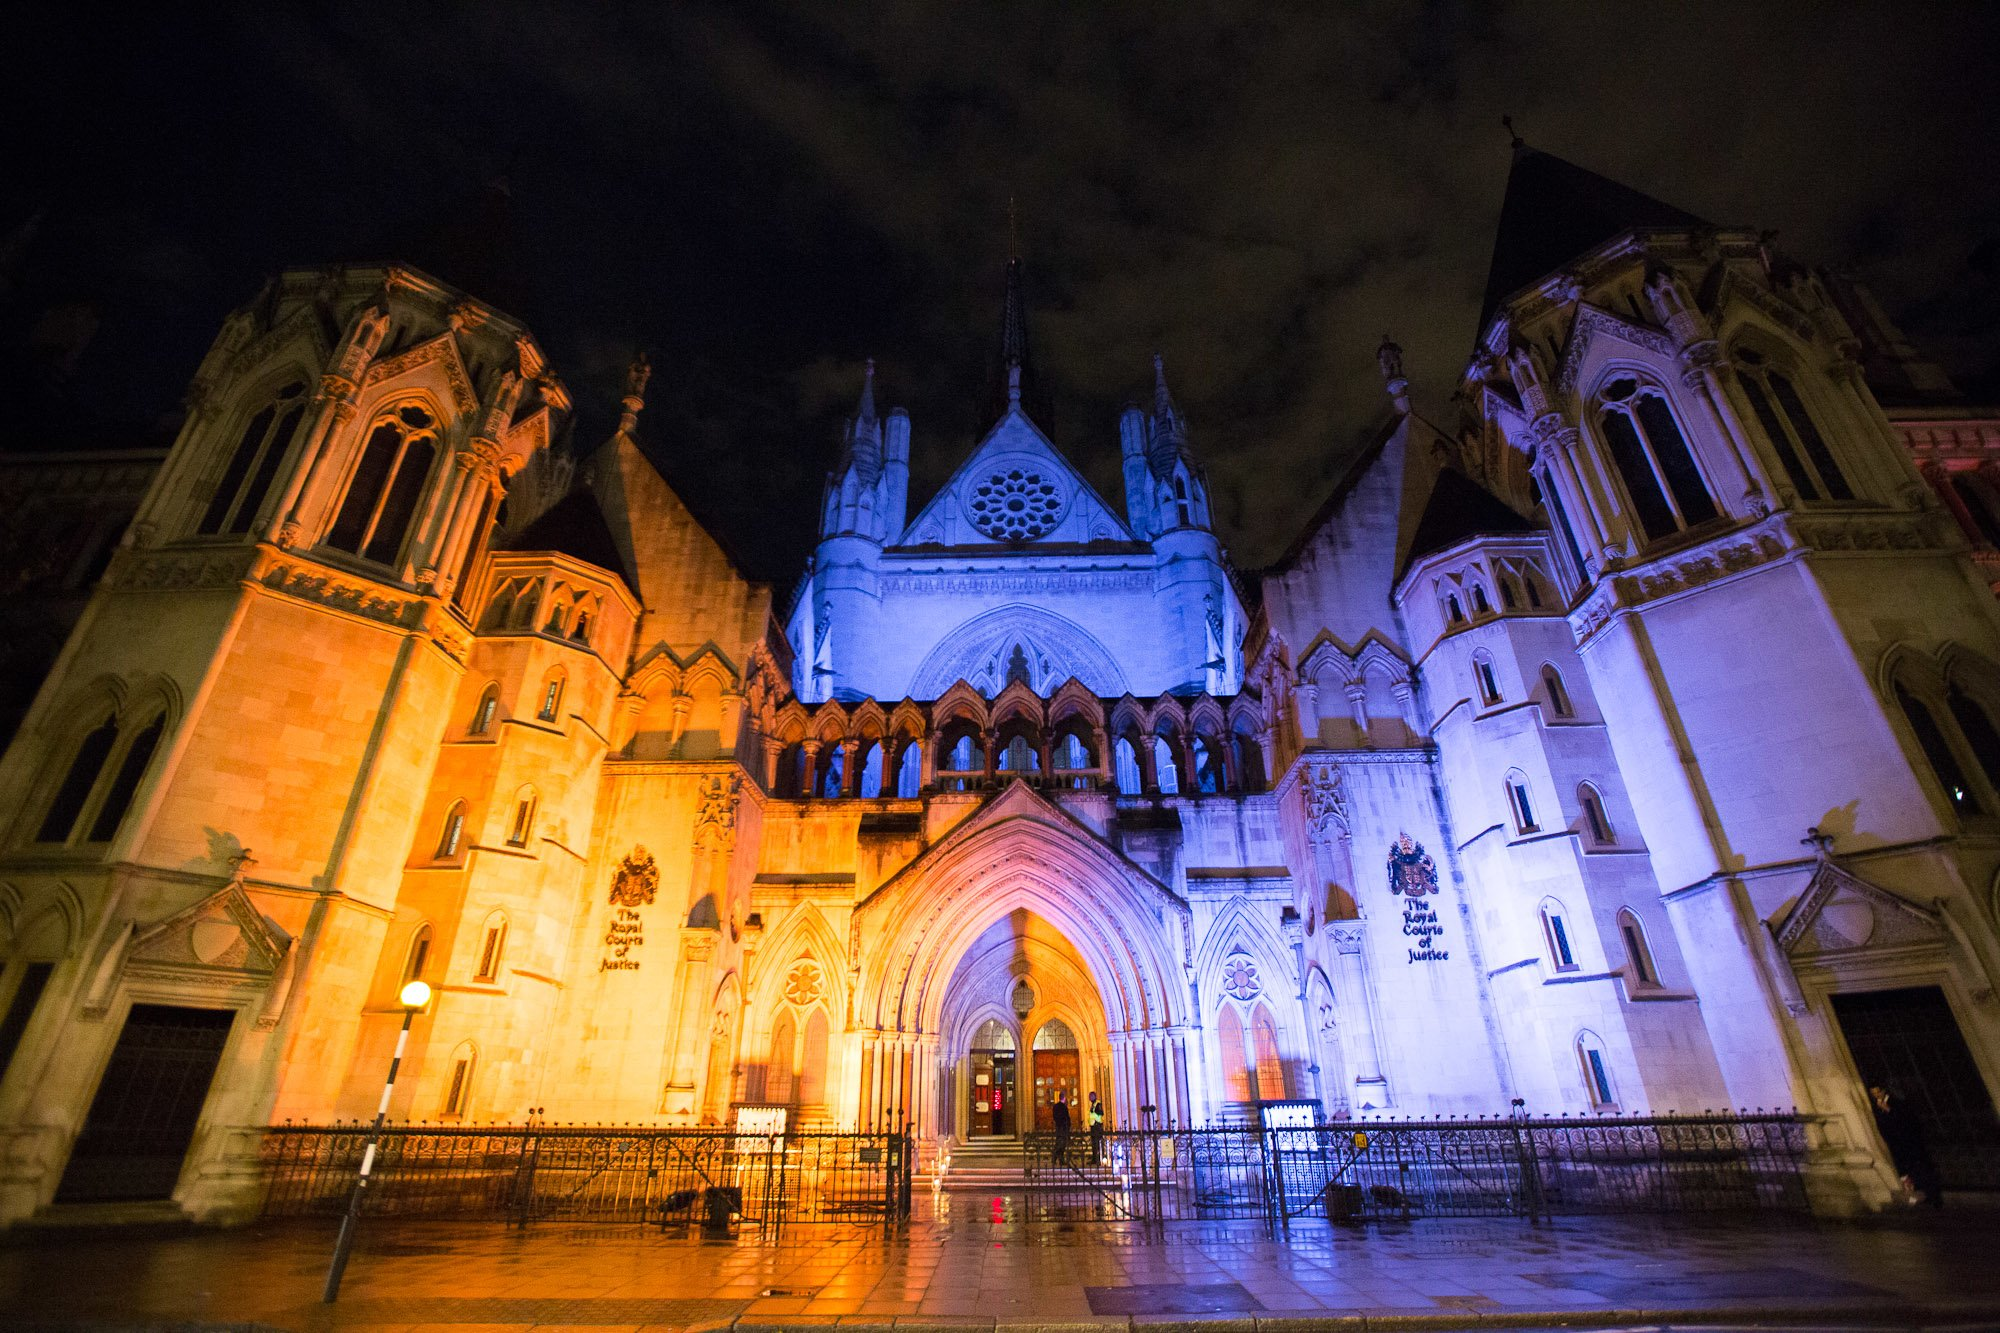 lexlaw litigation solicitor london professional negligence no win no fee lawyers